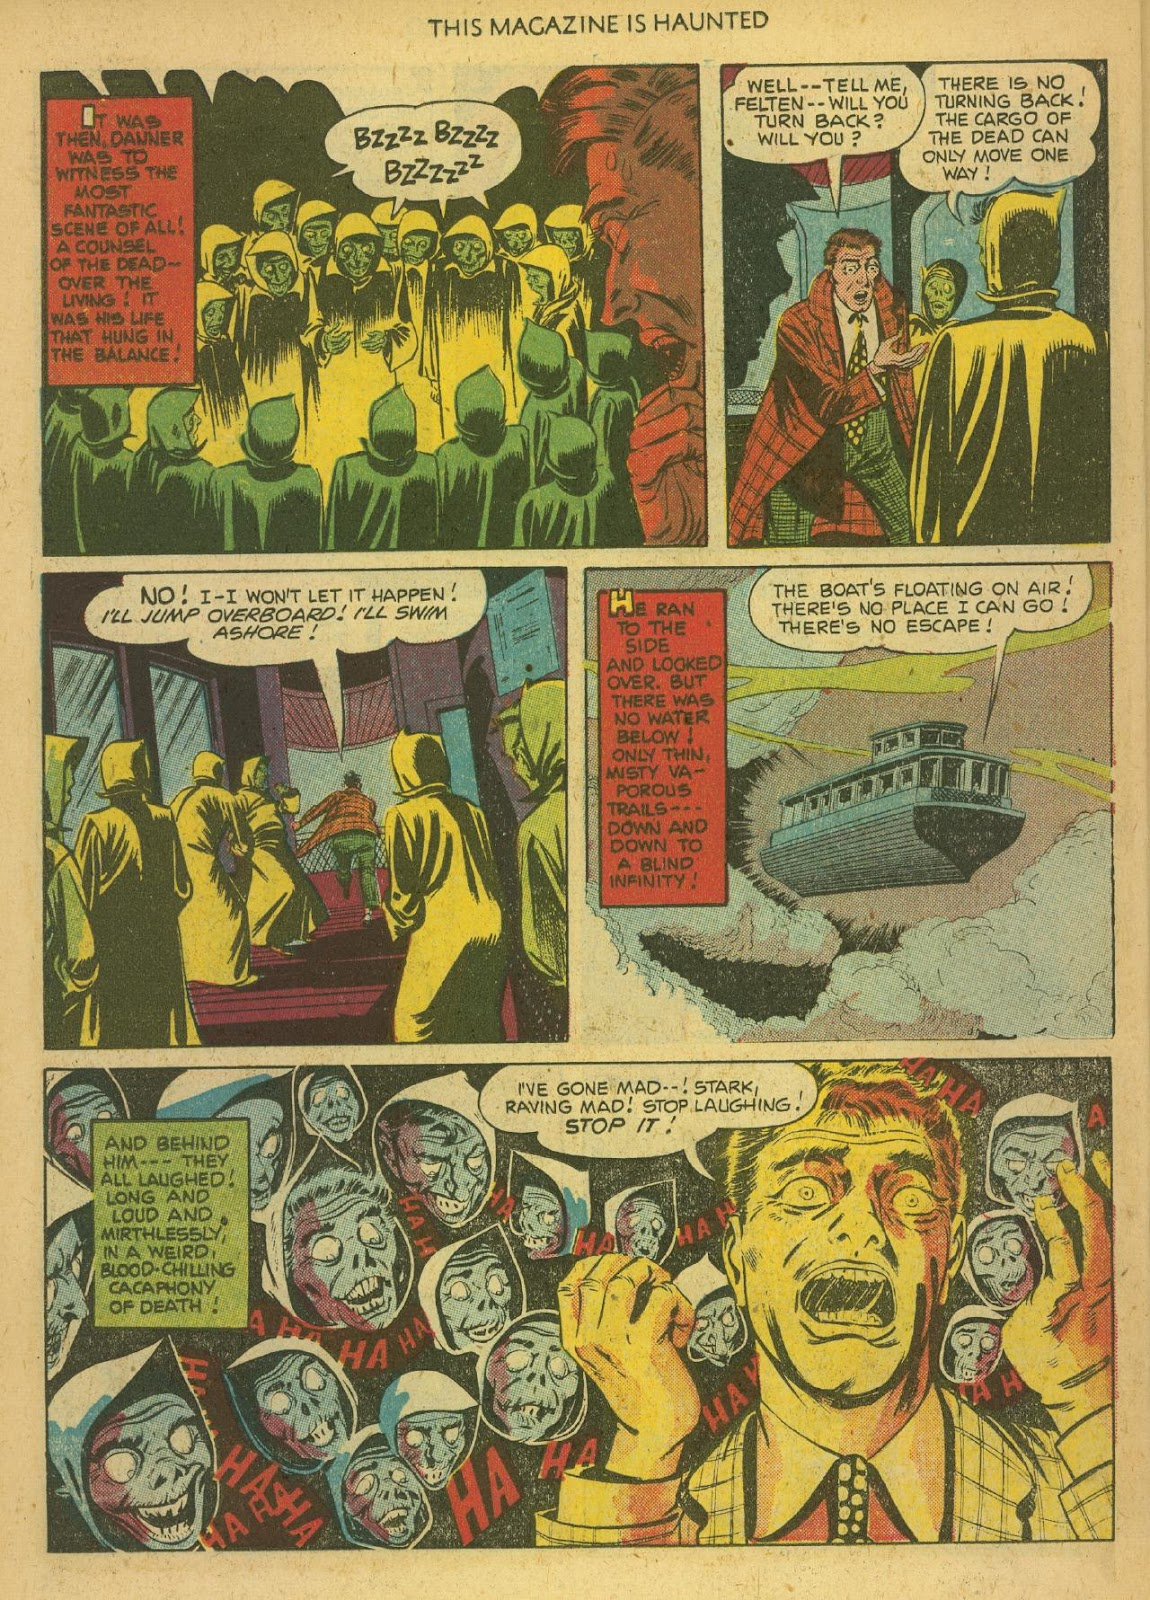 Read online This Magazine Is Haunted comic -  Issue #1 - 22